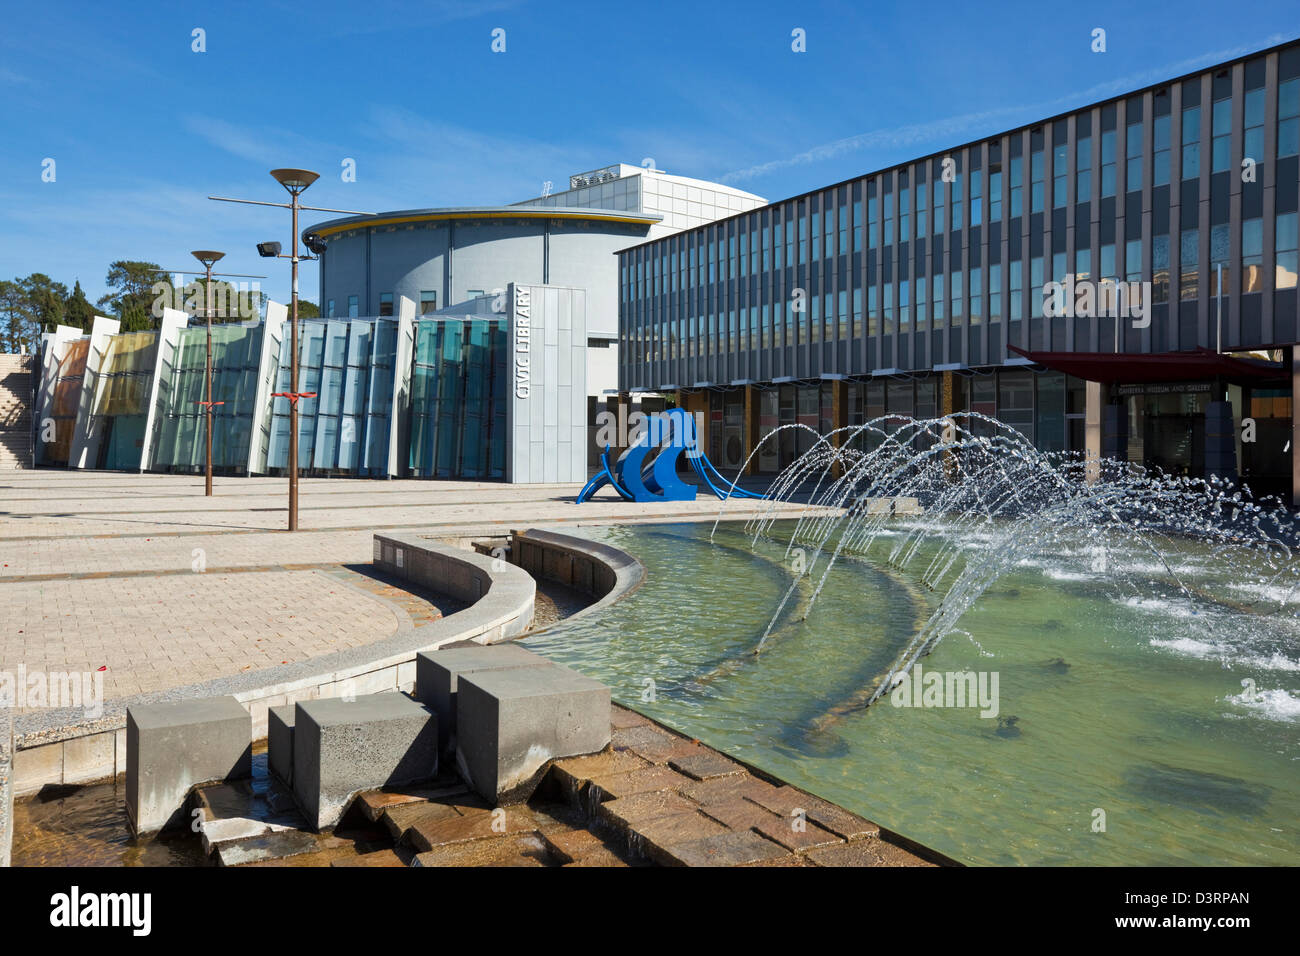 View across Civic Square to the Civic Library. Canberra, Australian Capital Territory (ACT), Australia - Stock Image